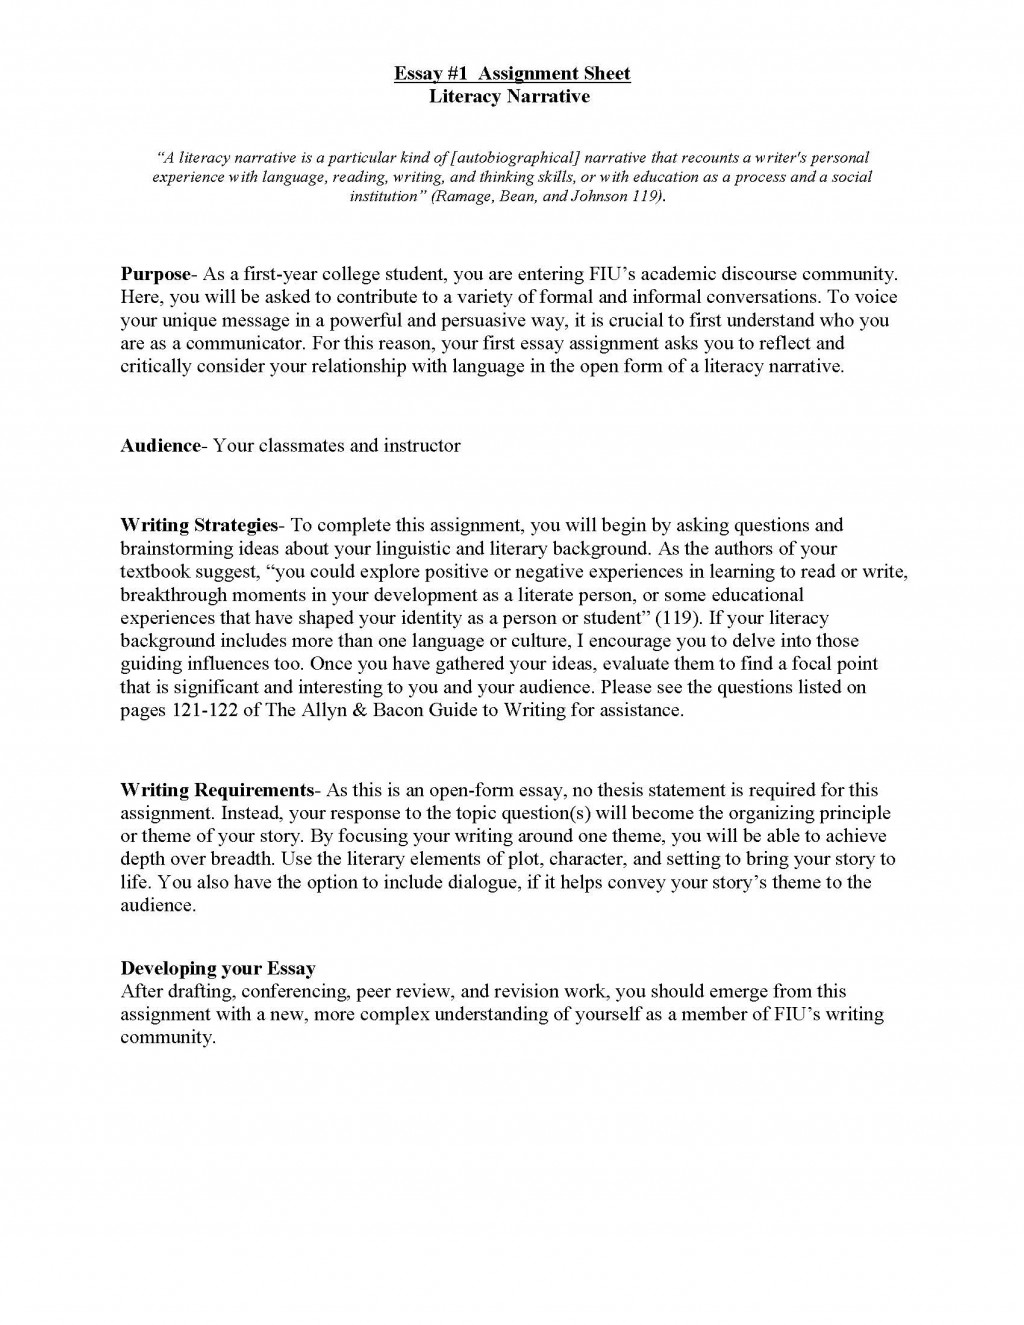 013 Essay Example Literacy Narrative Unitssignment Spring 2012 Page 1 Writing Amazing A Pdf Sample High School Personal Outline Large